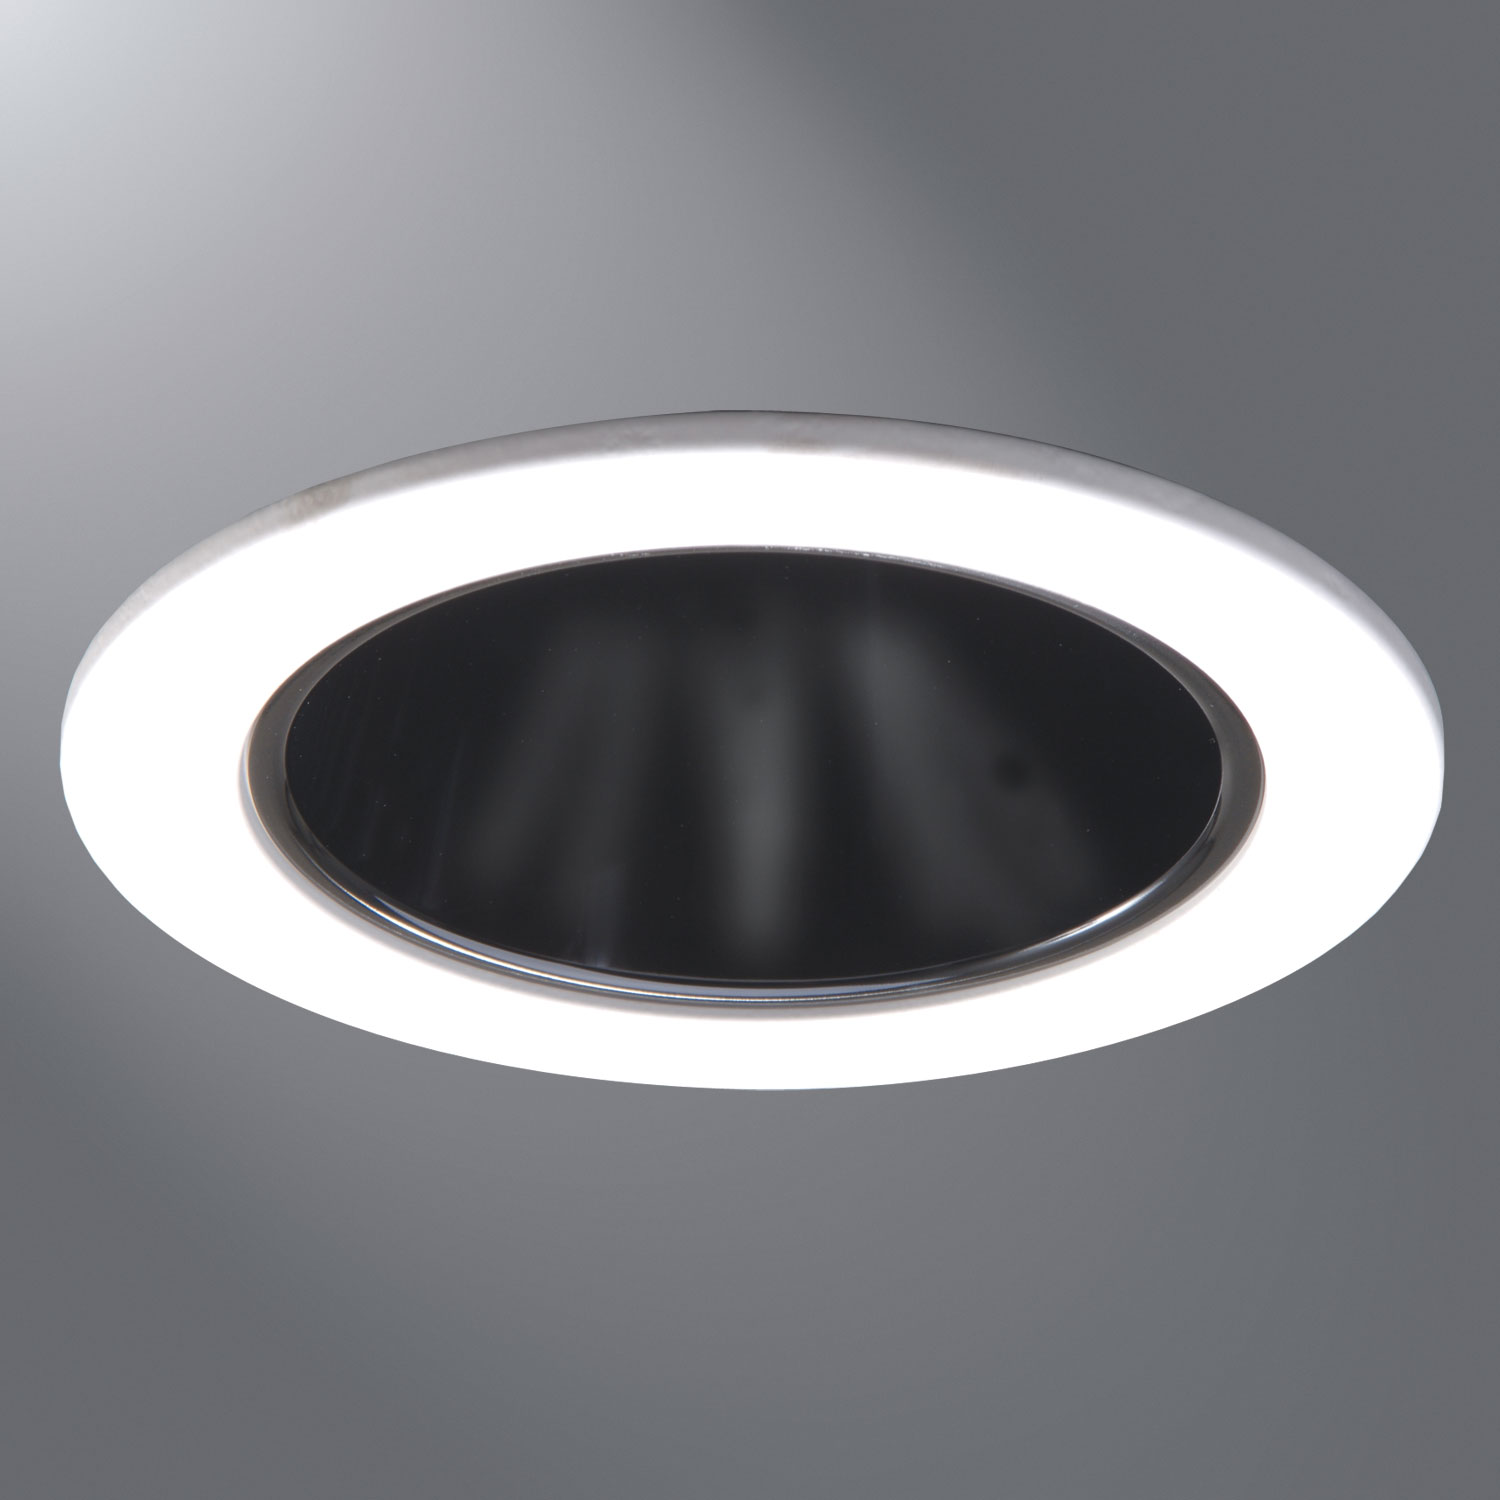 999 4 Inch Reflector Downlight Trim By Halo   999MB